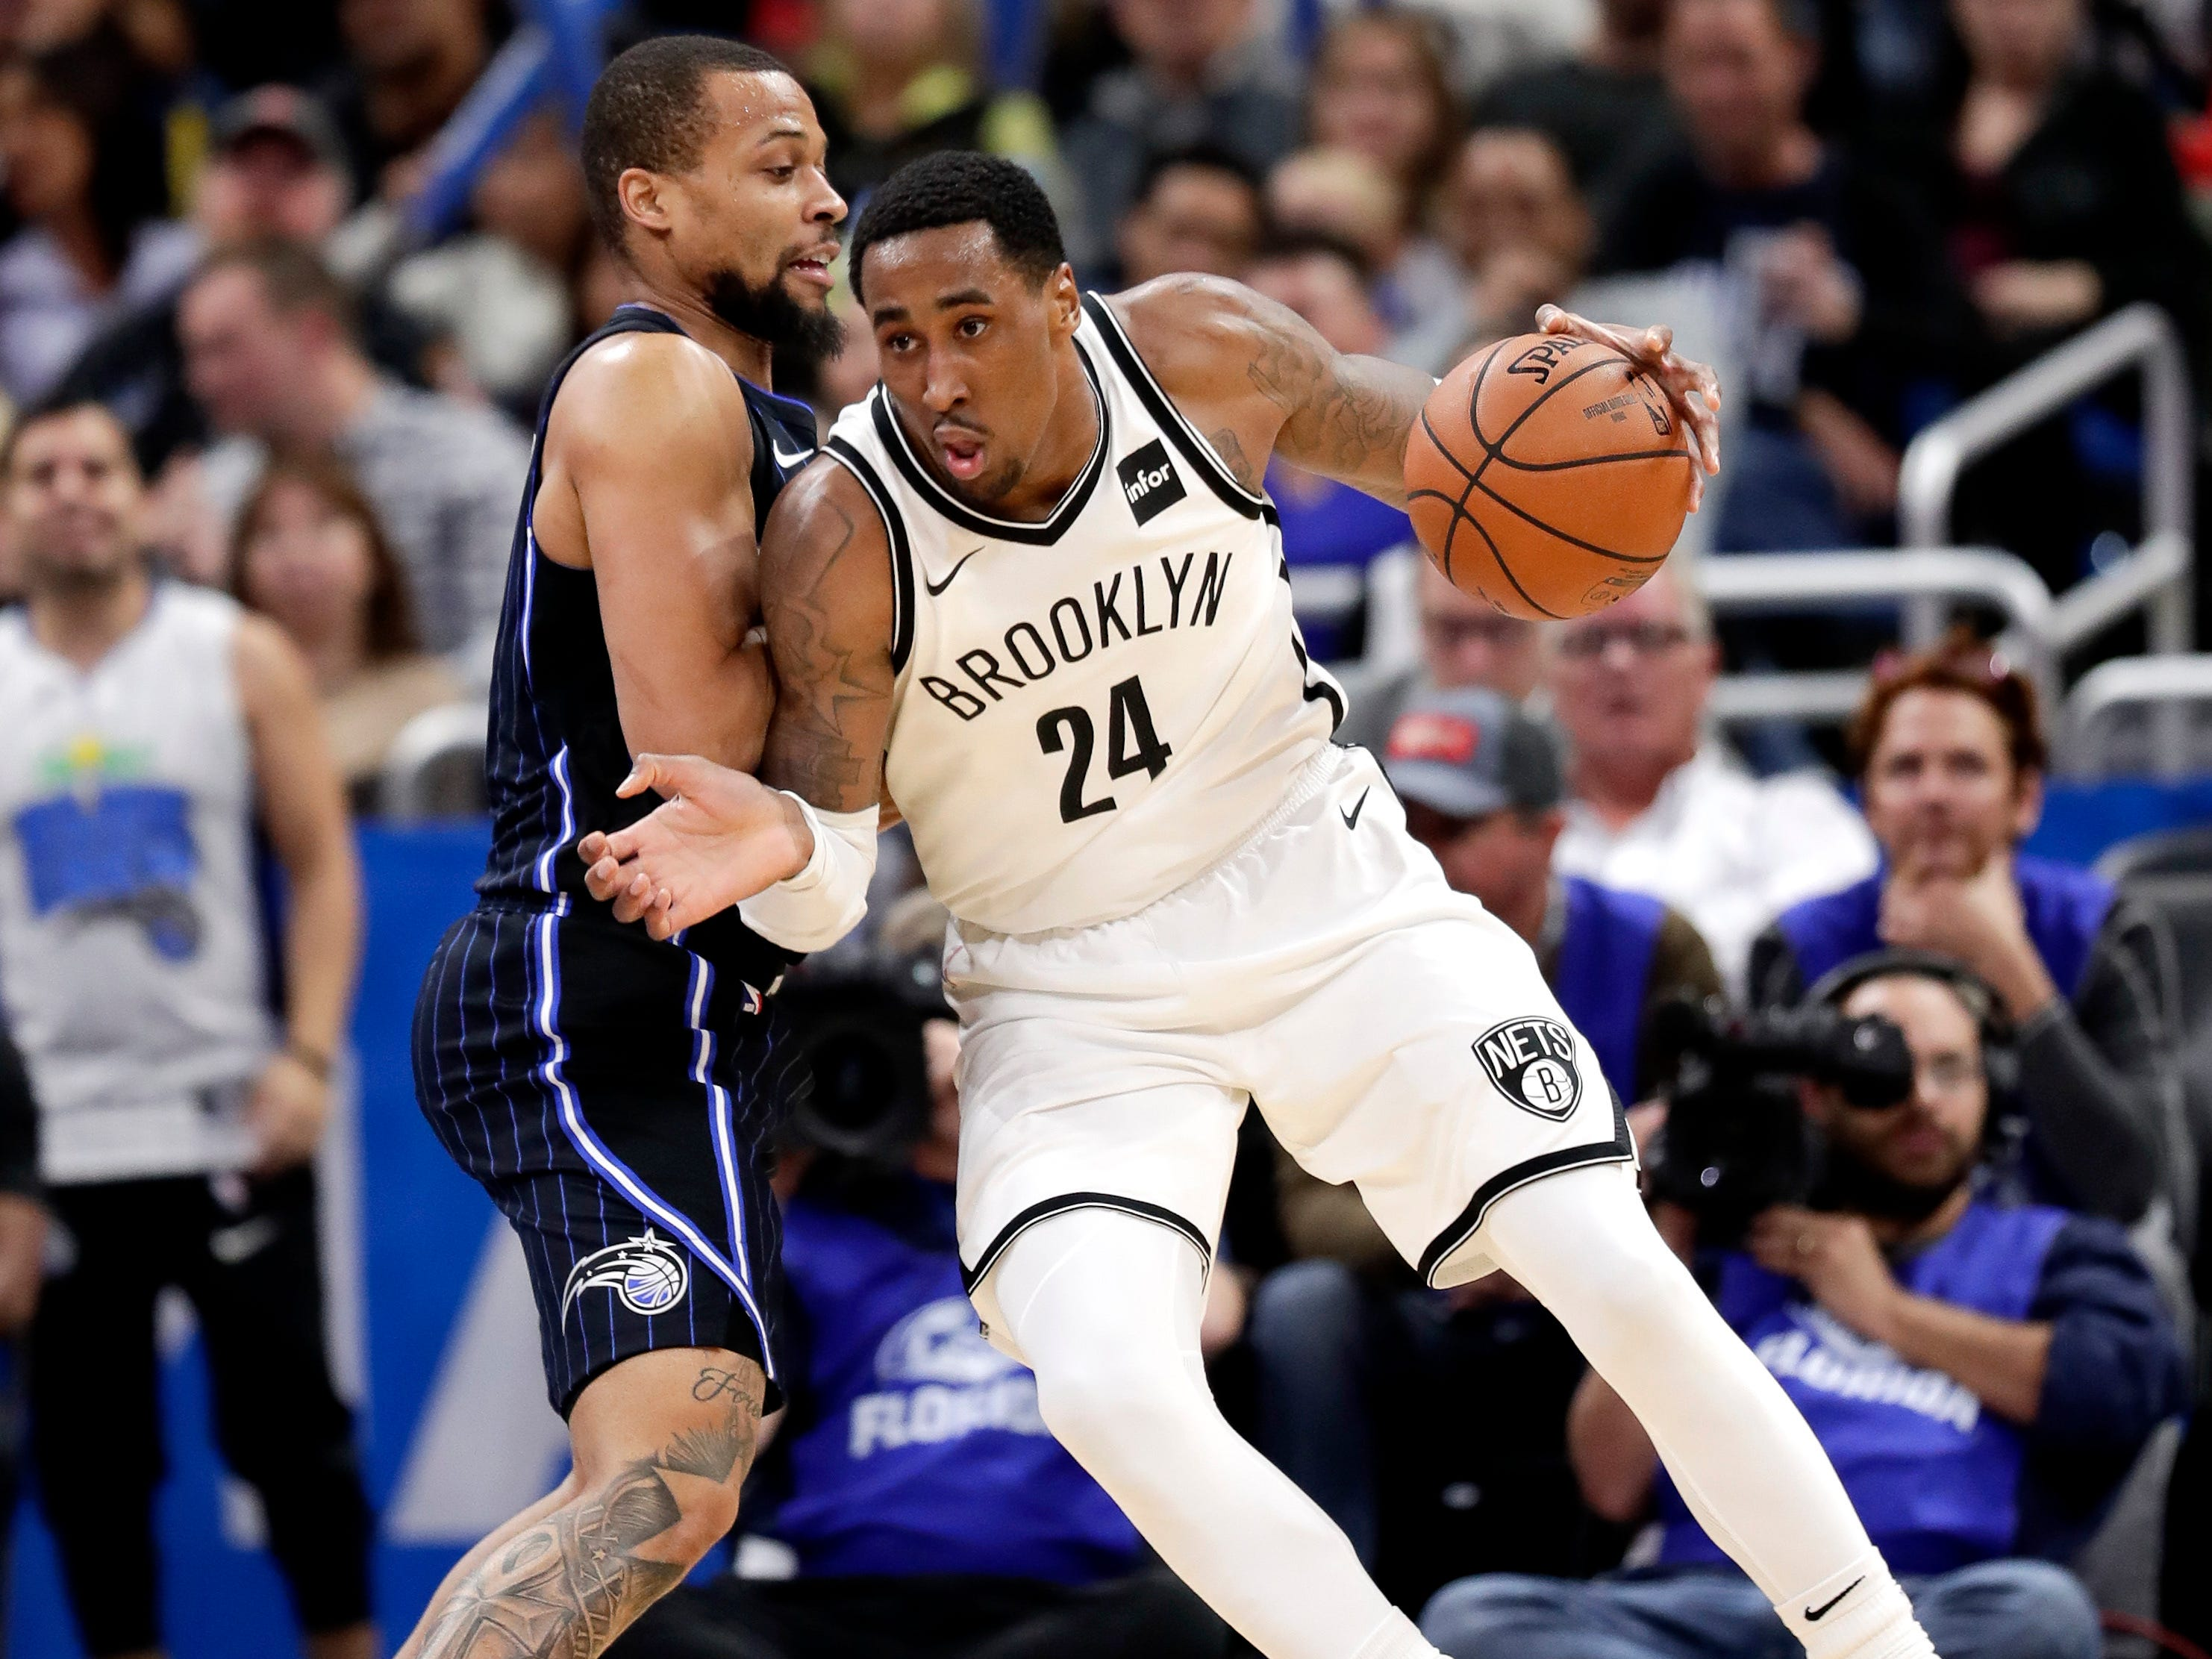 Brooklyn Nets' Rondae Hollis-Jefferson (24) moves to the basket as Orlando Magic's Isaiah Briscoe defends during the first half of an NBA basketball game Friday, Jan. 18, 2019, in Orlando, Fla.